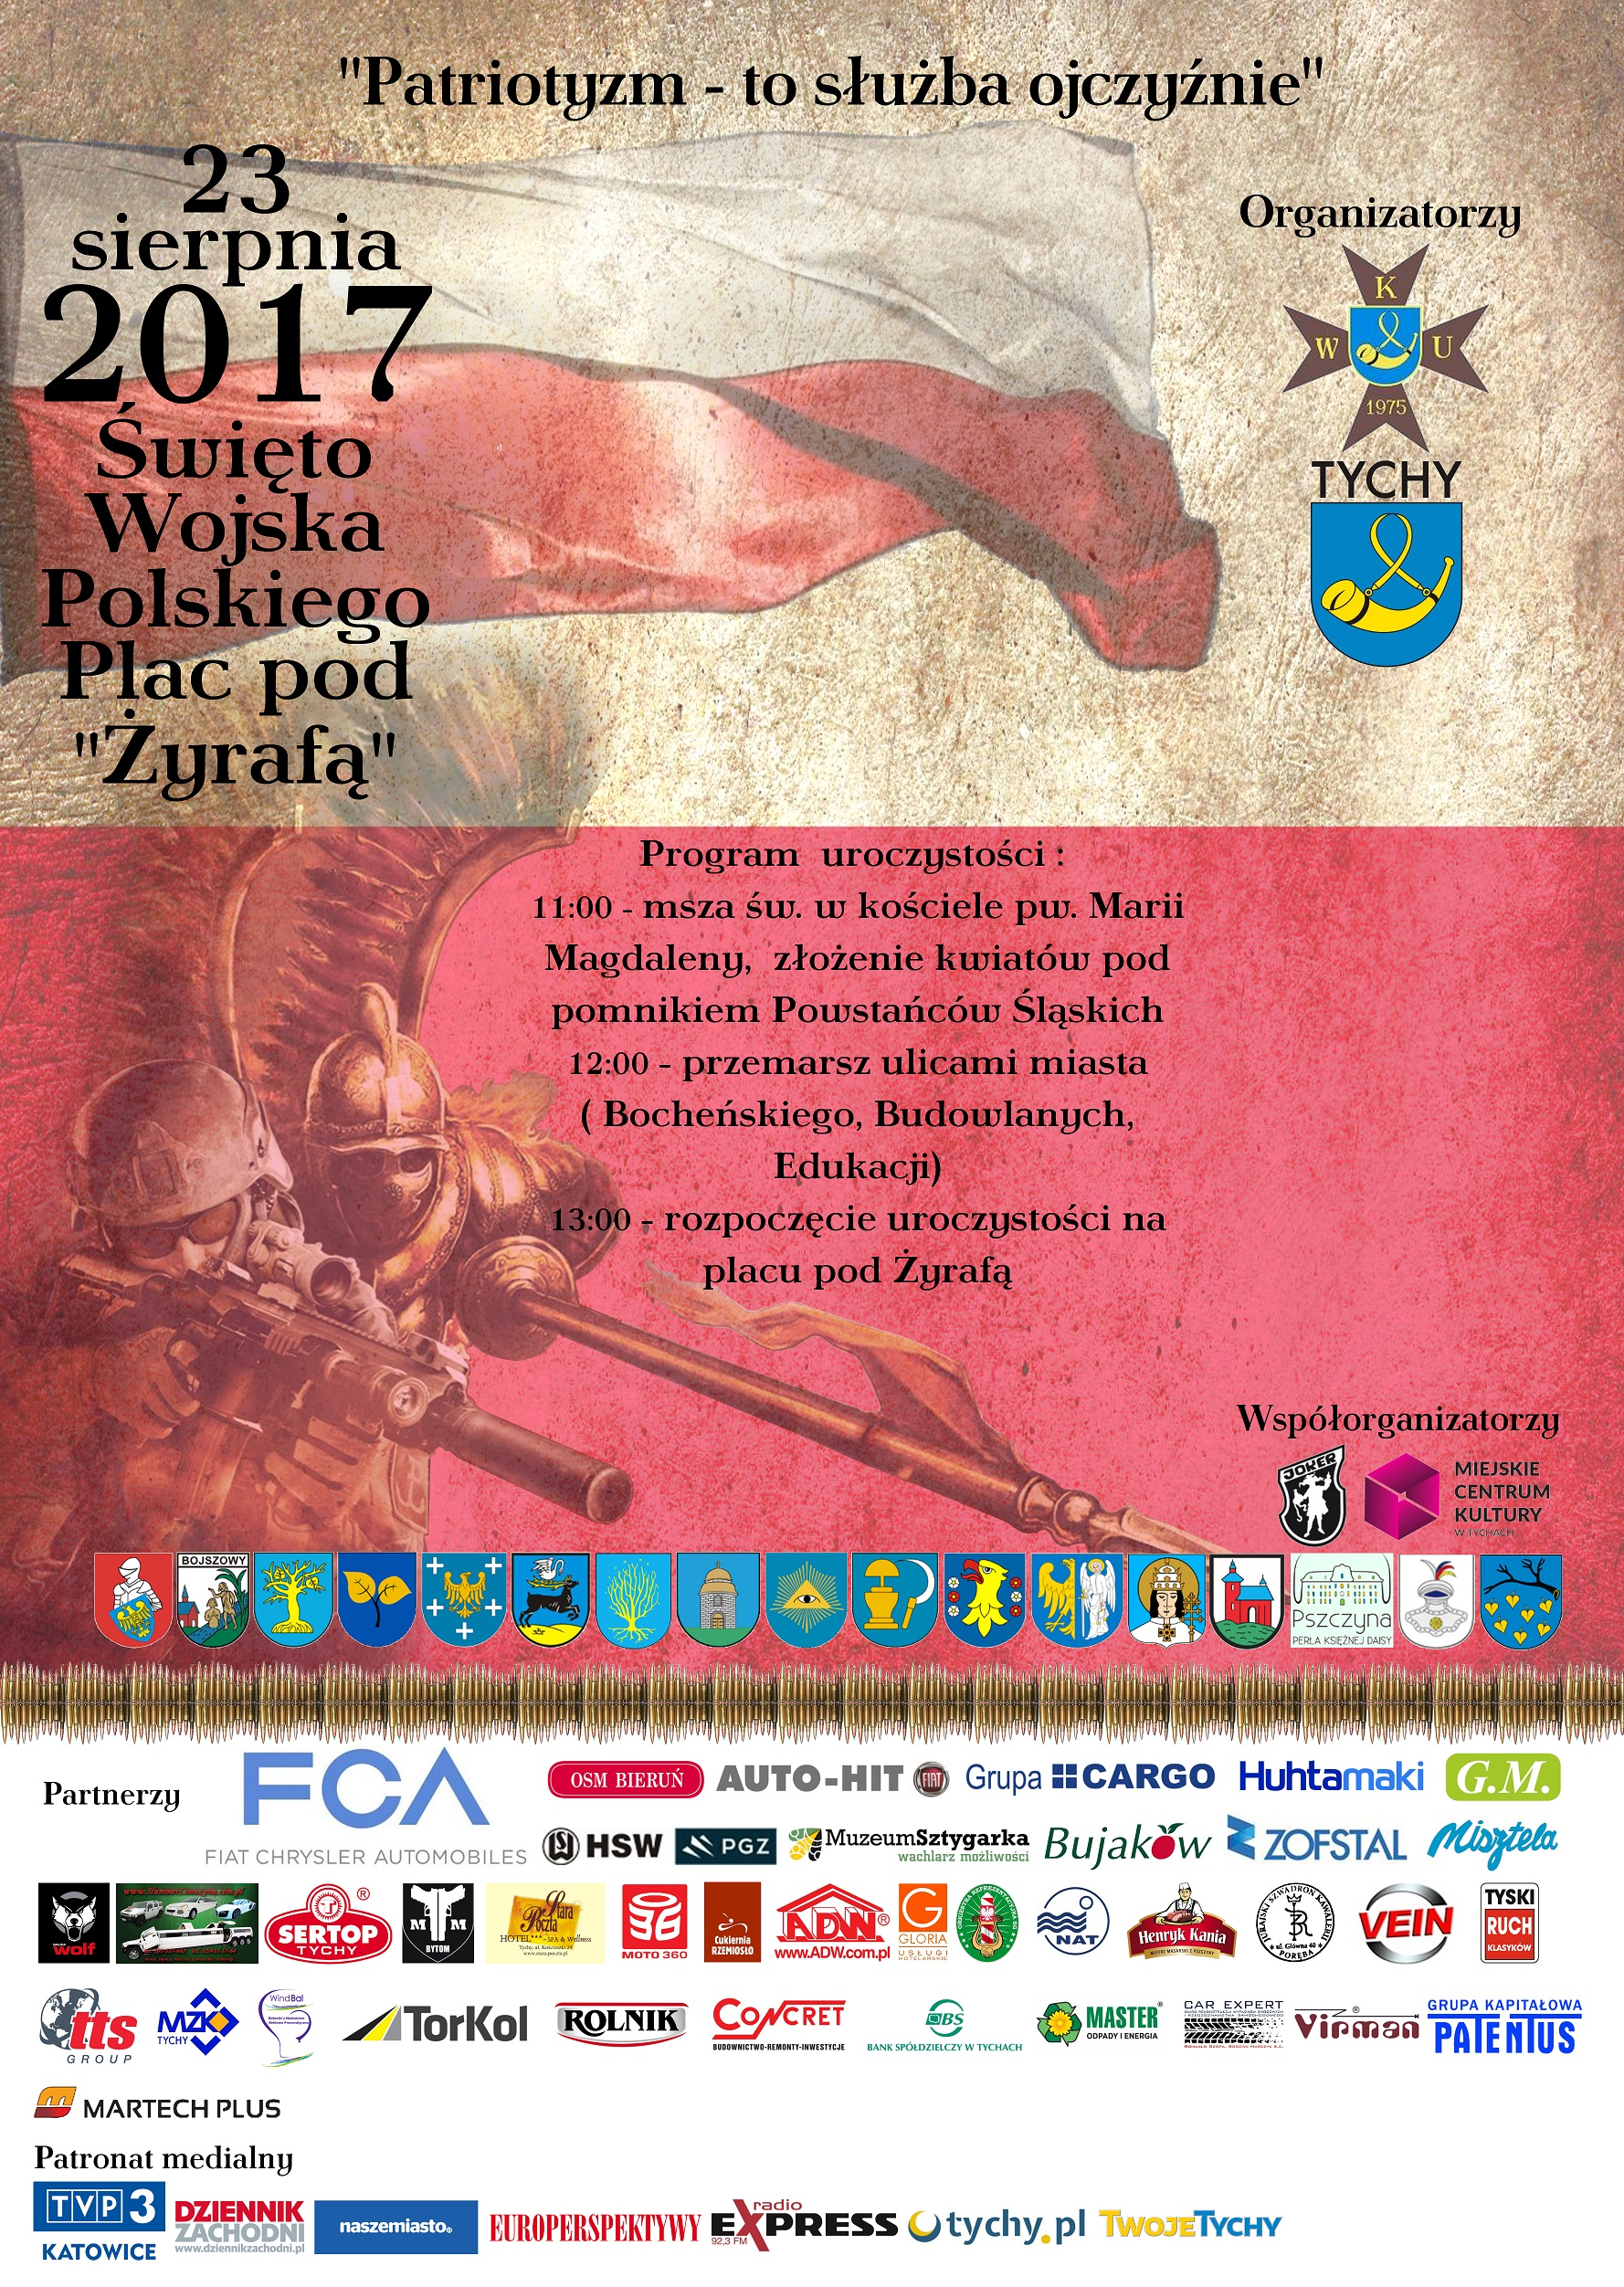 Plakat 2017 Sw WP Tychy maly